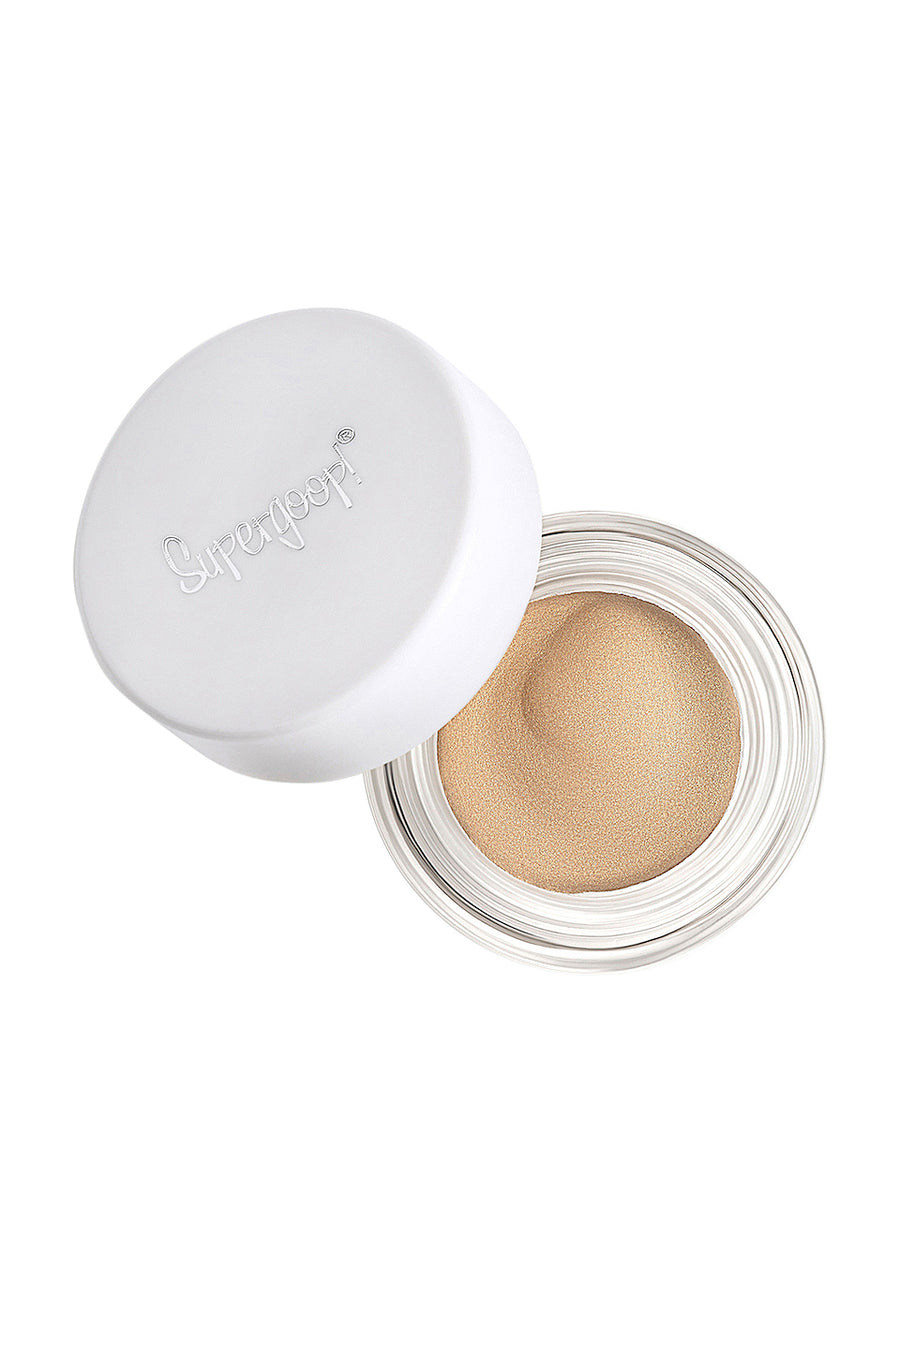 Shimmer shade SPF 30 Day Dream, 0.18 oz